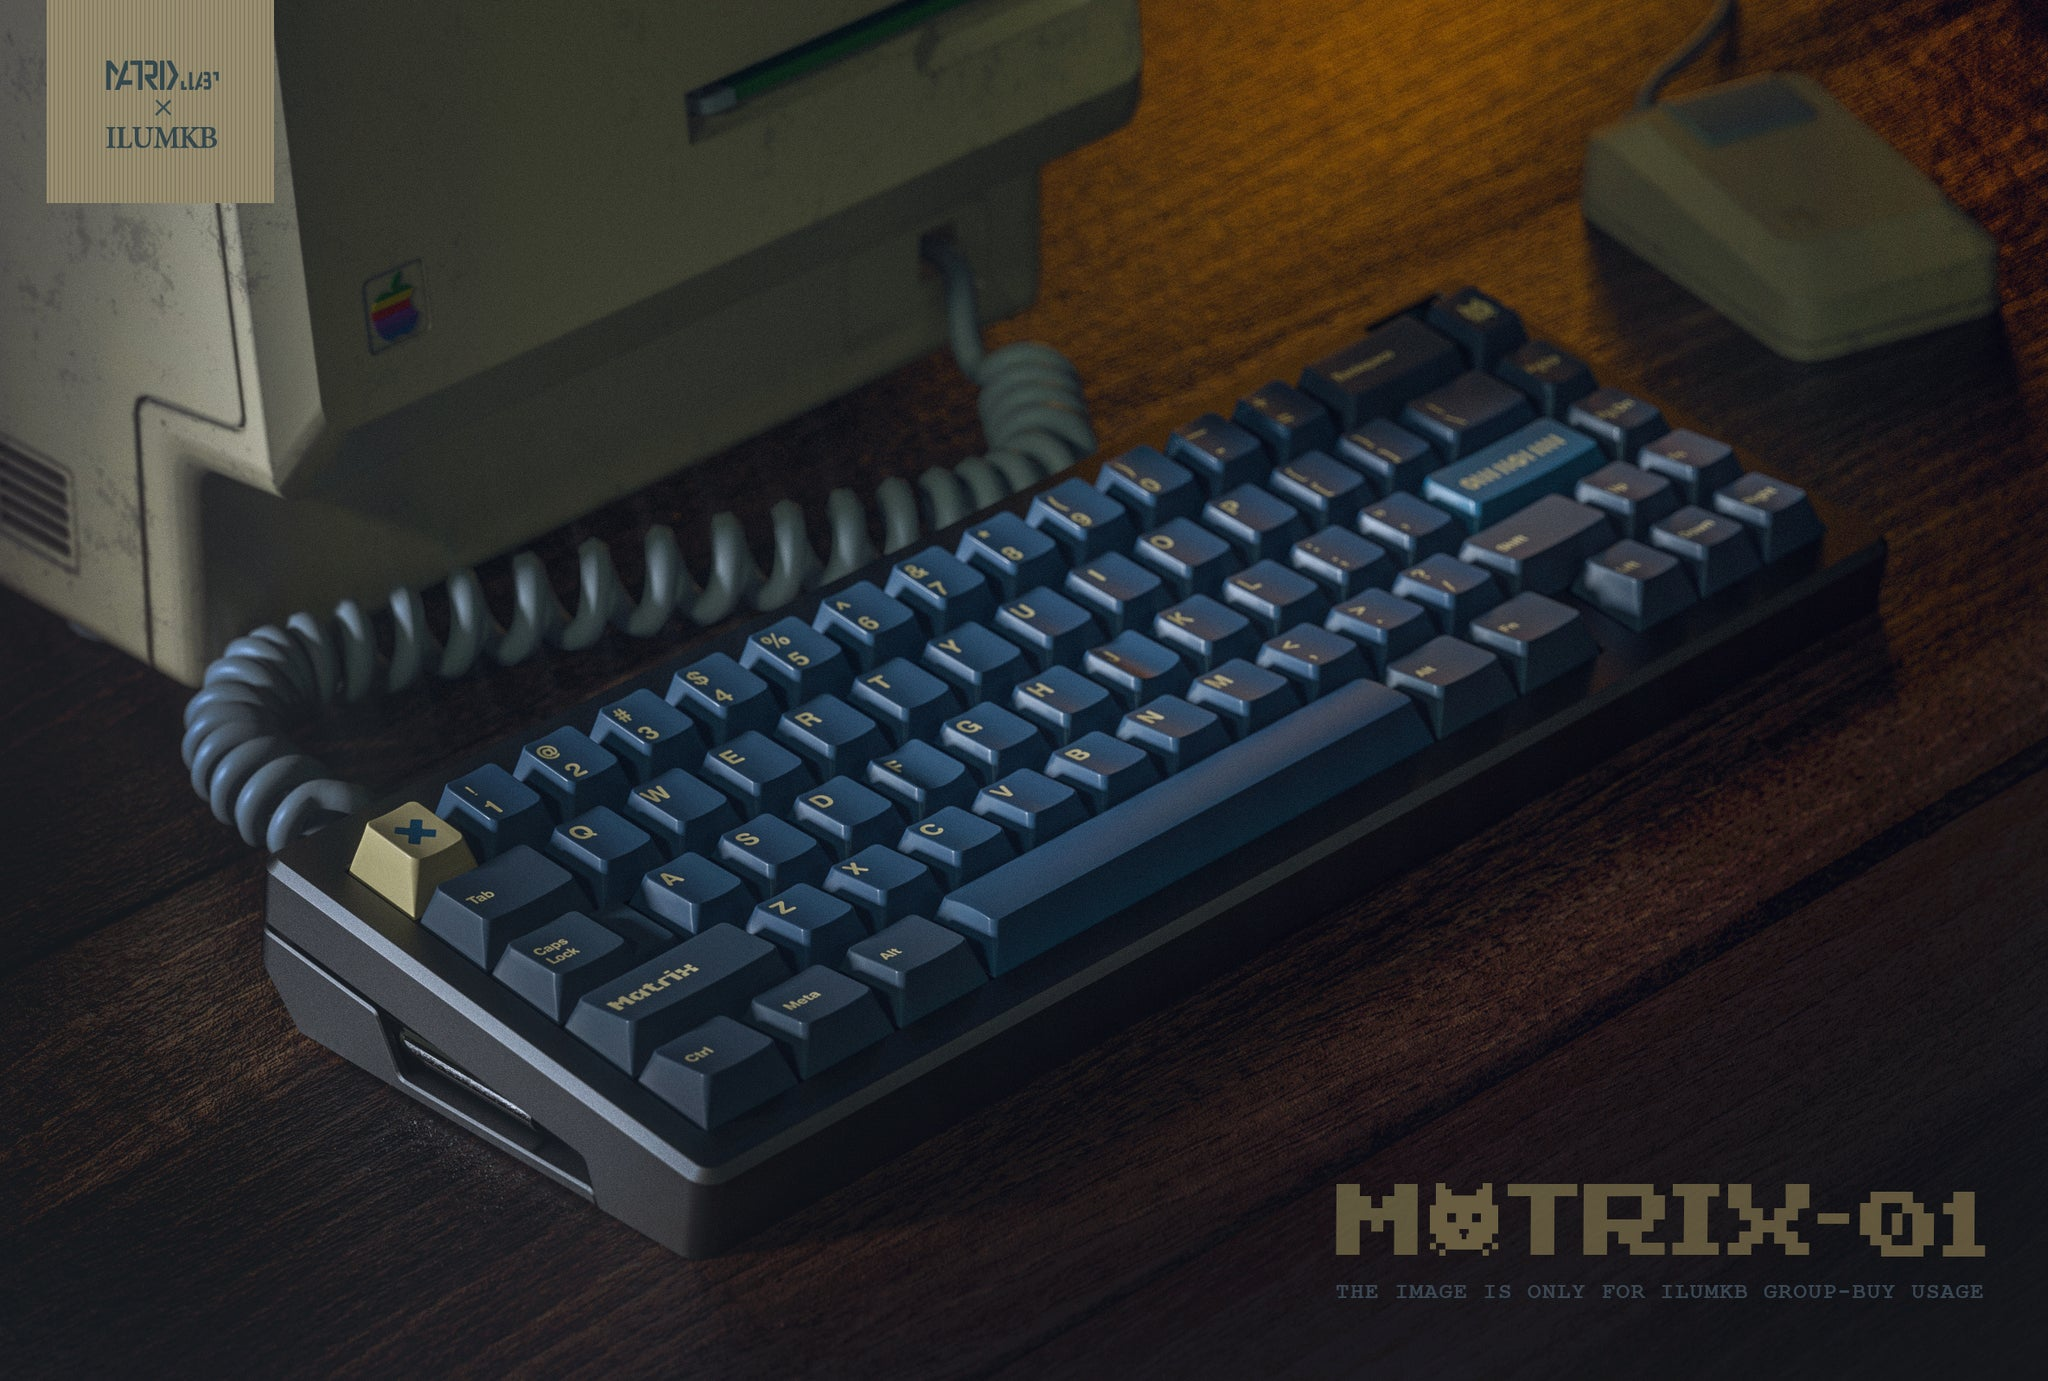 GMK Matrix-0.1 is Coming Soon